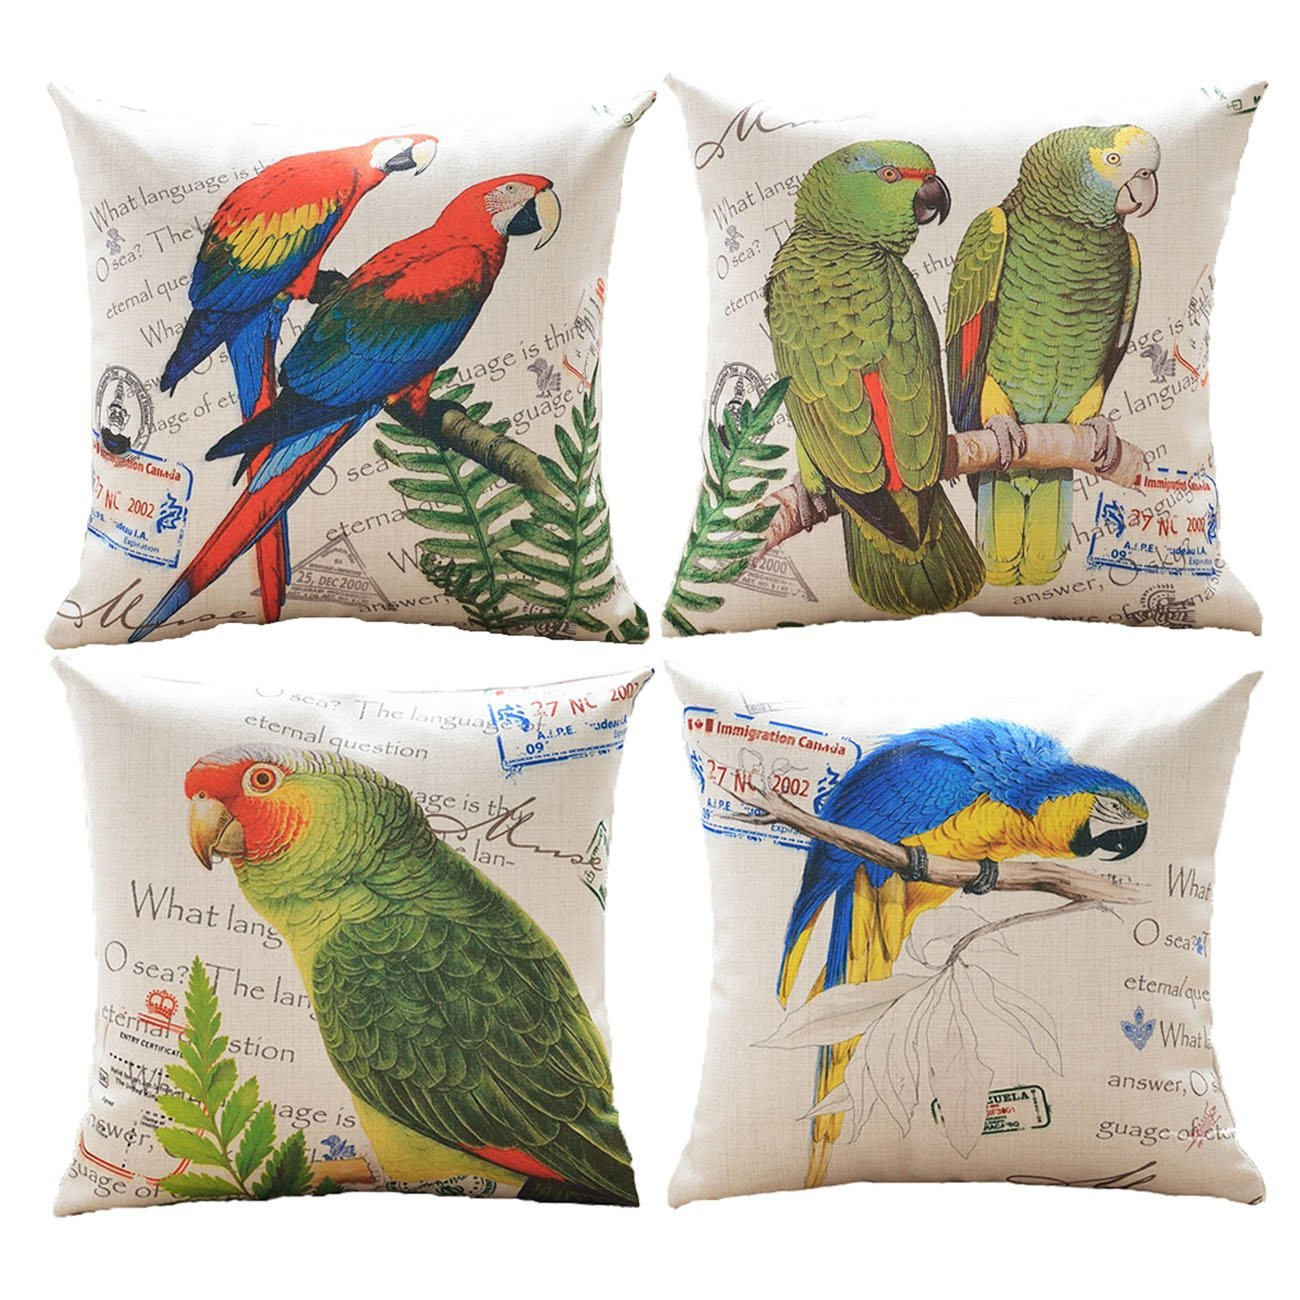 sykting Couch Pillow Cases Decorative Cushion Covers Set of 4 Pillow Shams for Sofa:Bench 18x18 Birds & Flowers Series Cotton Linen